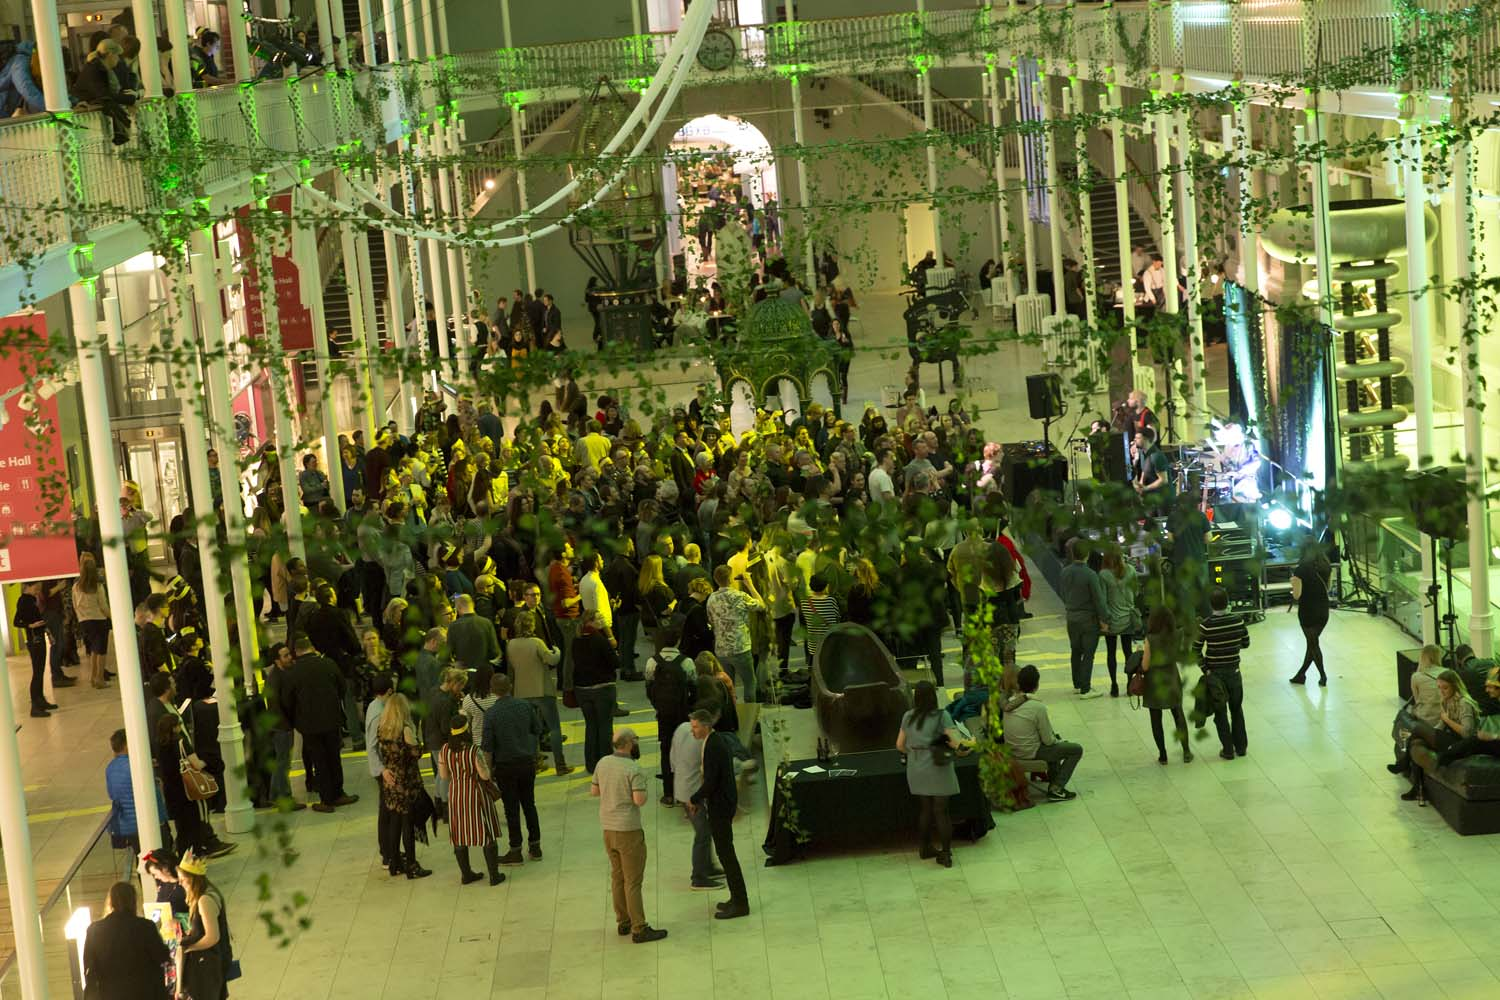 The Grand Gallery at the National Museum of Scotland is transformed into a jungle for Museum Late: Monkey Business.